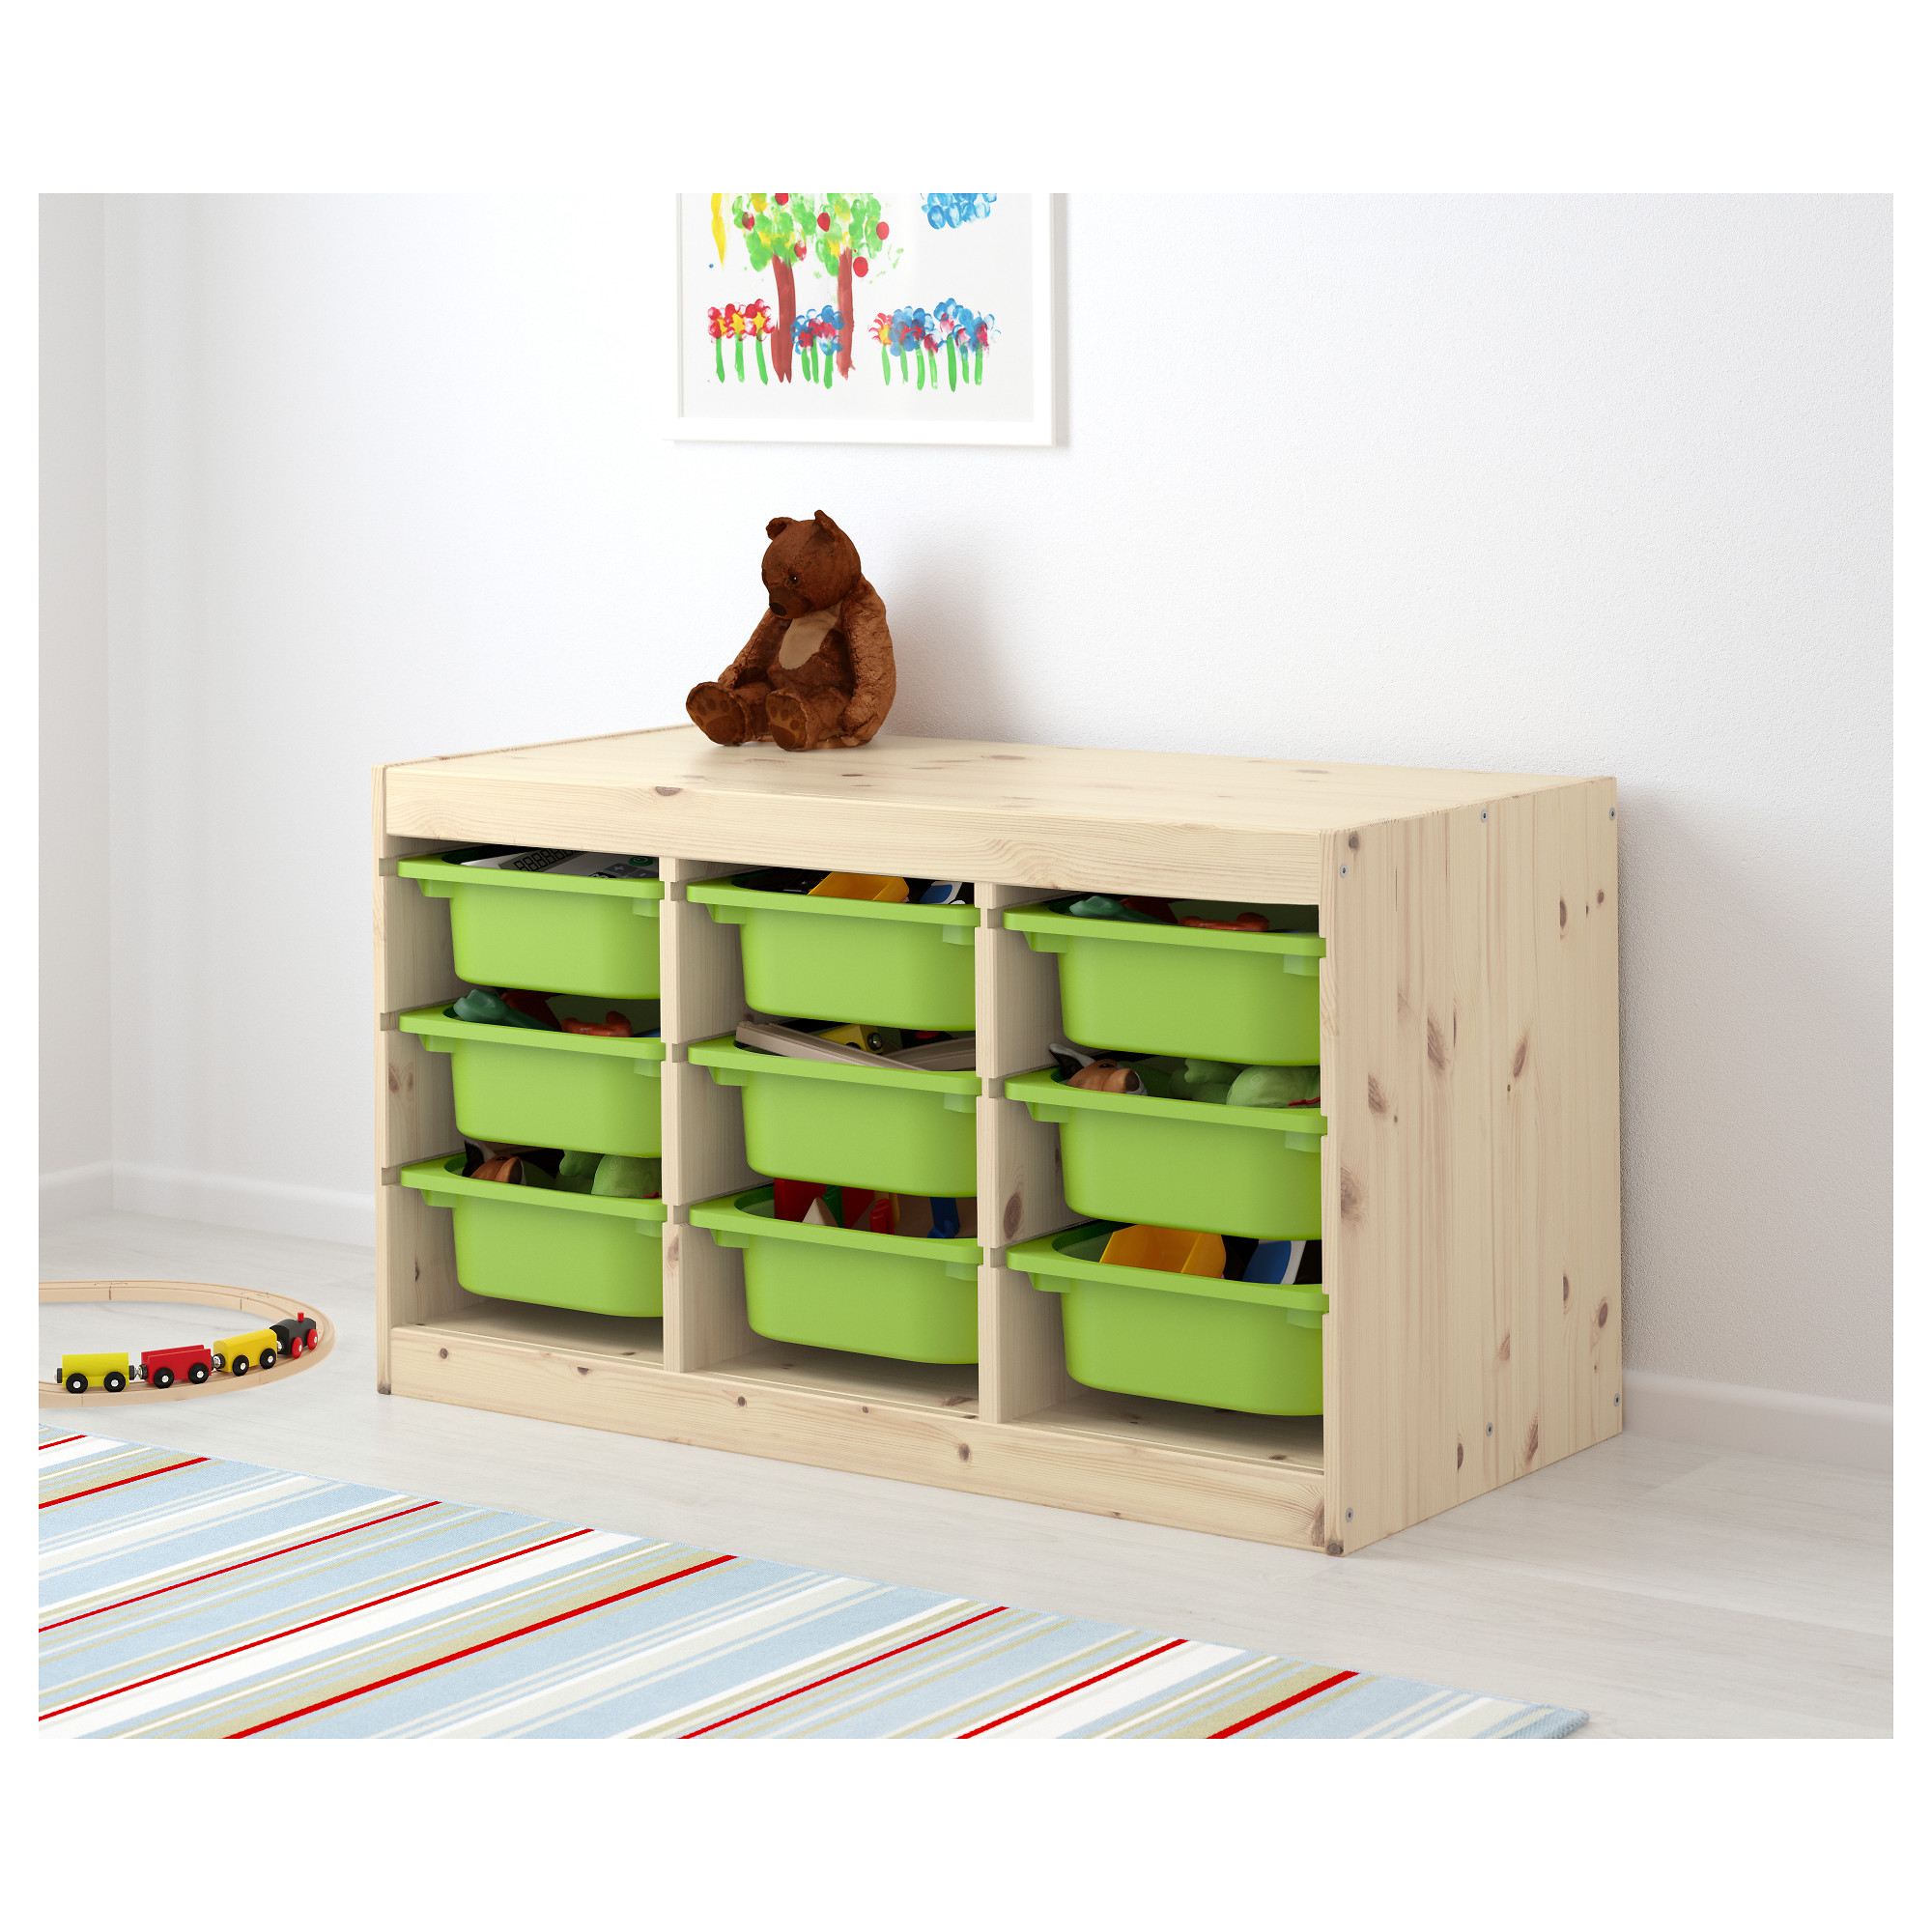 Trofast Ikea trofast storage combination with boxes light white stained pine